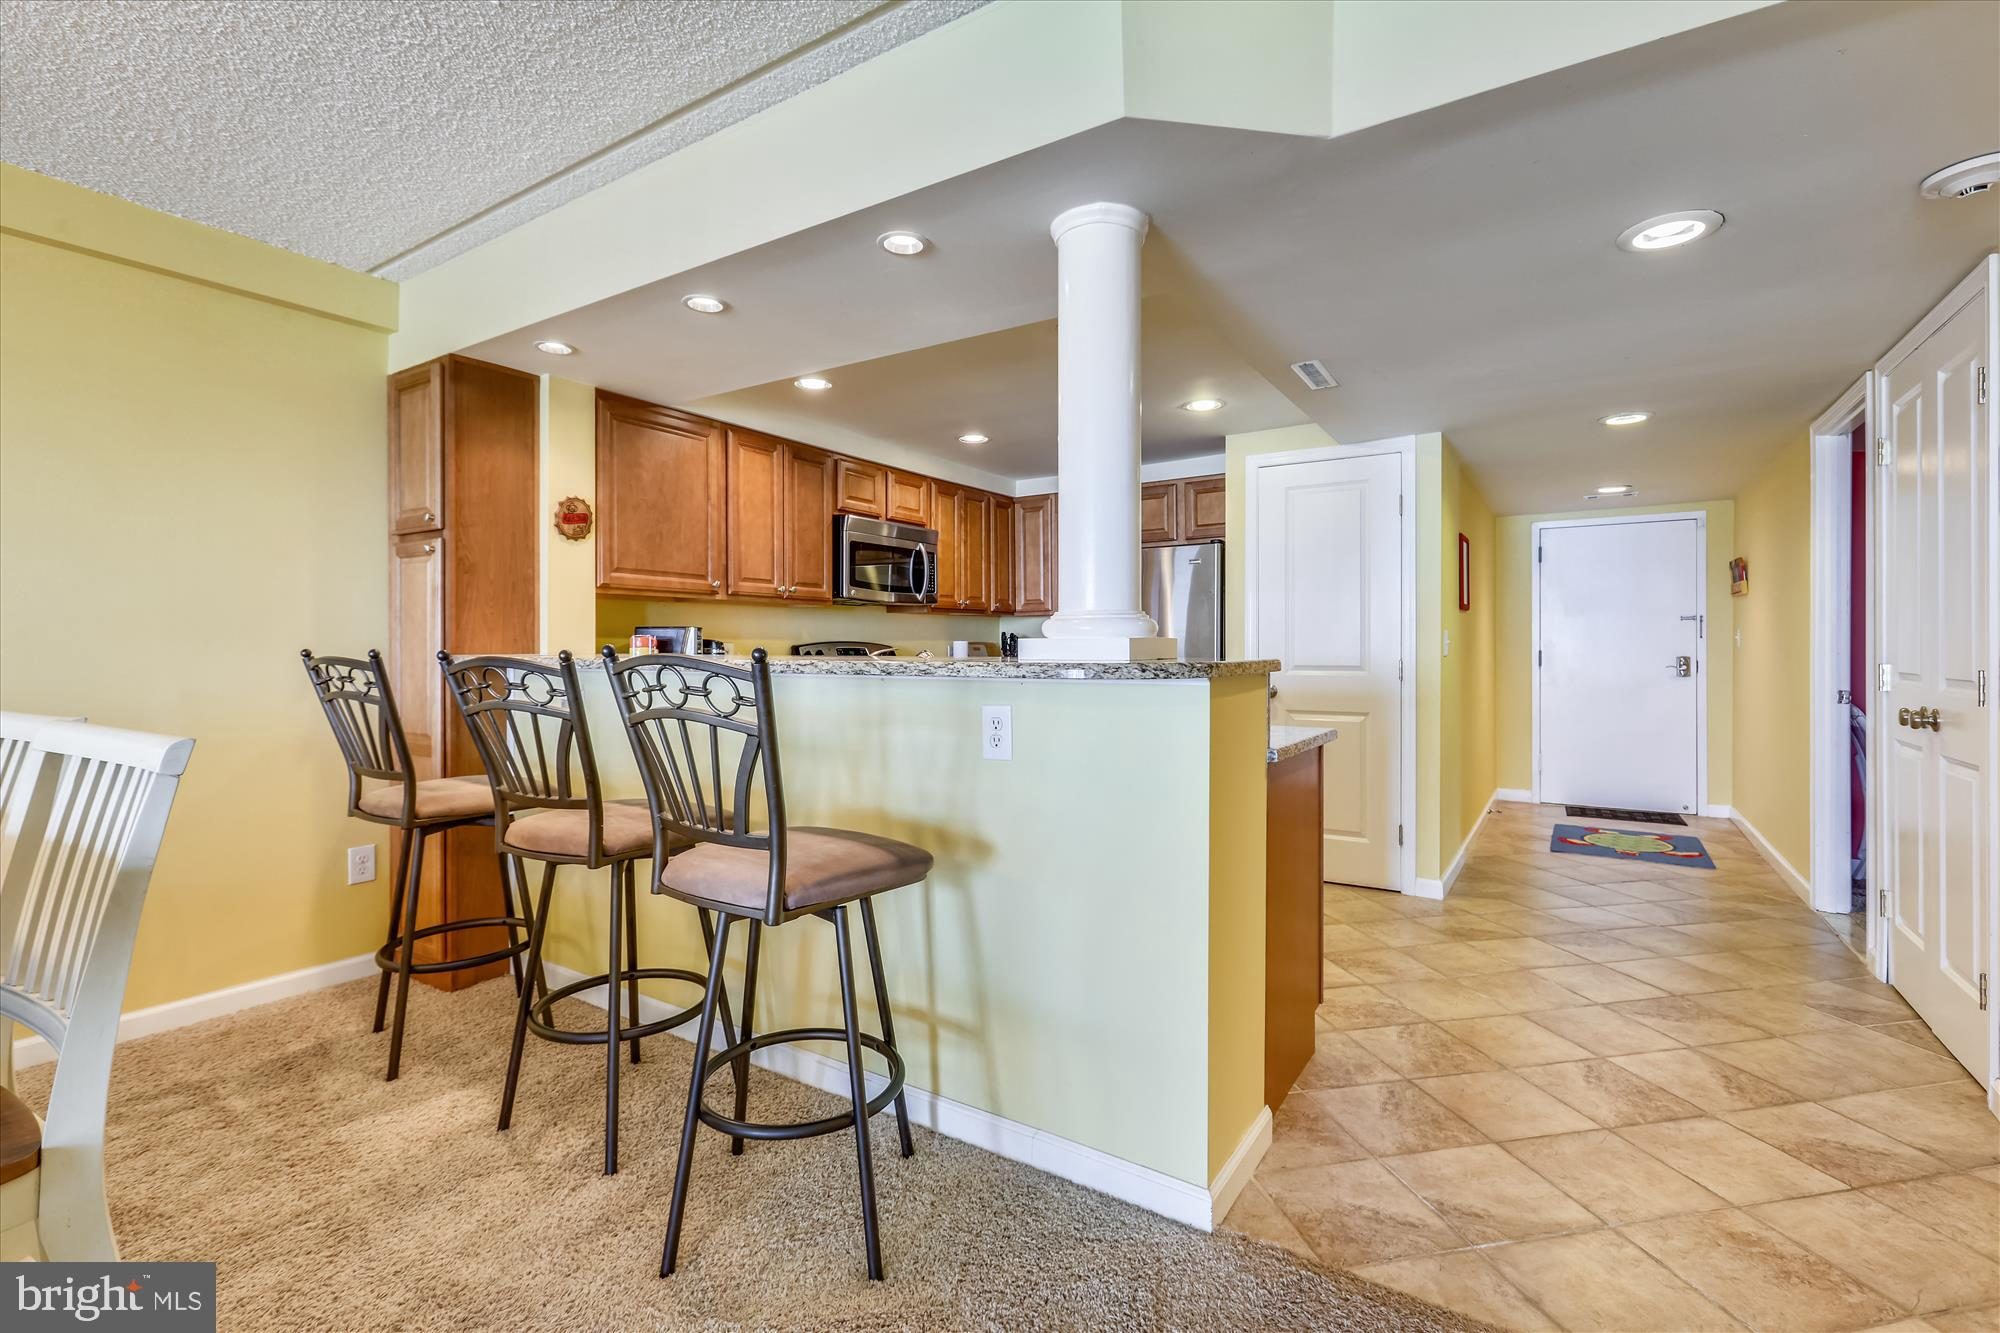 Beautifully updated 3 bedroom 2 bath condo Condo on the 9th floor of English Towers with a beautiful